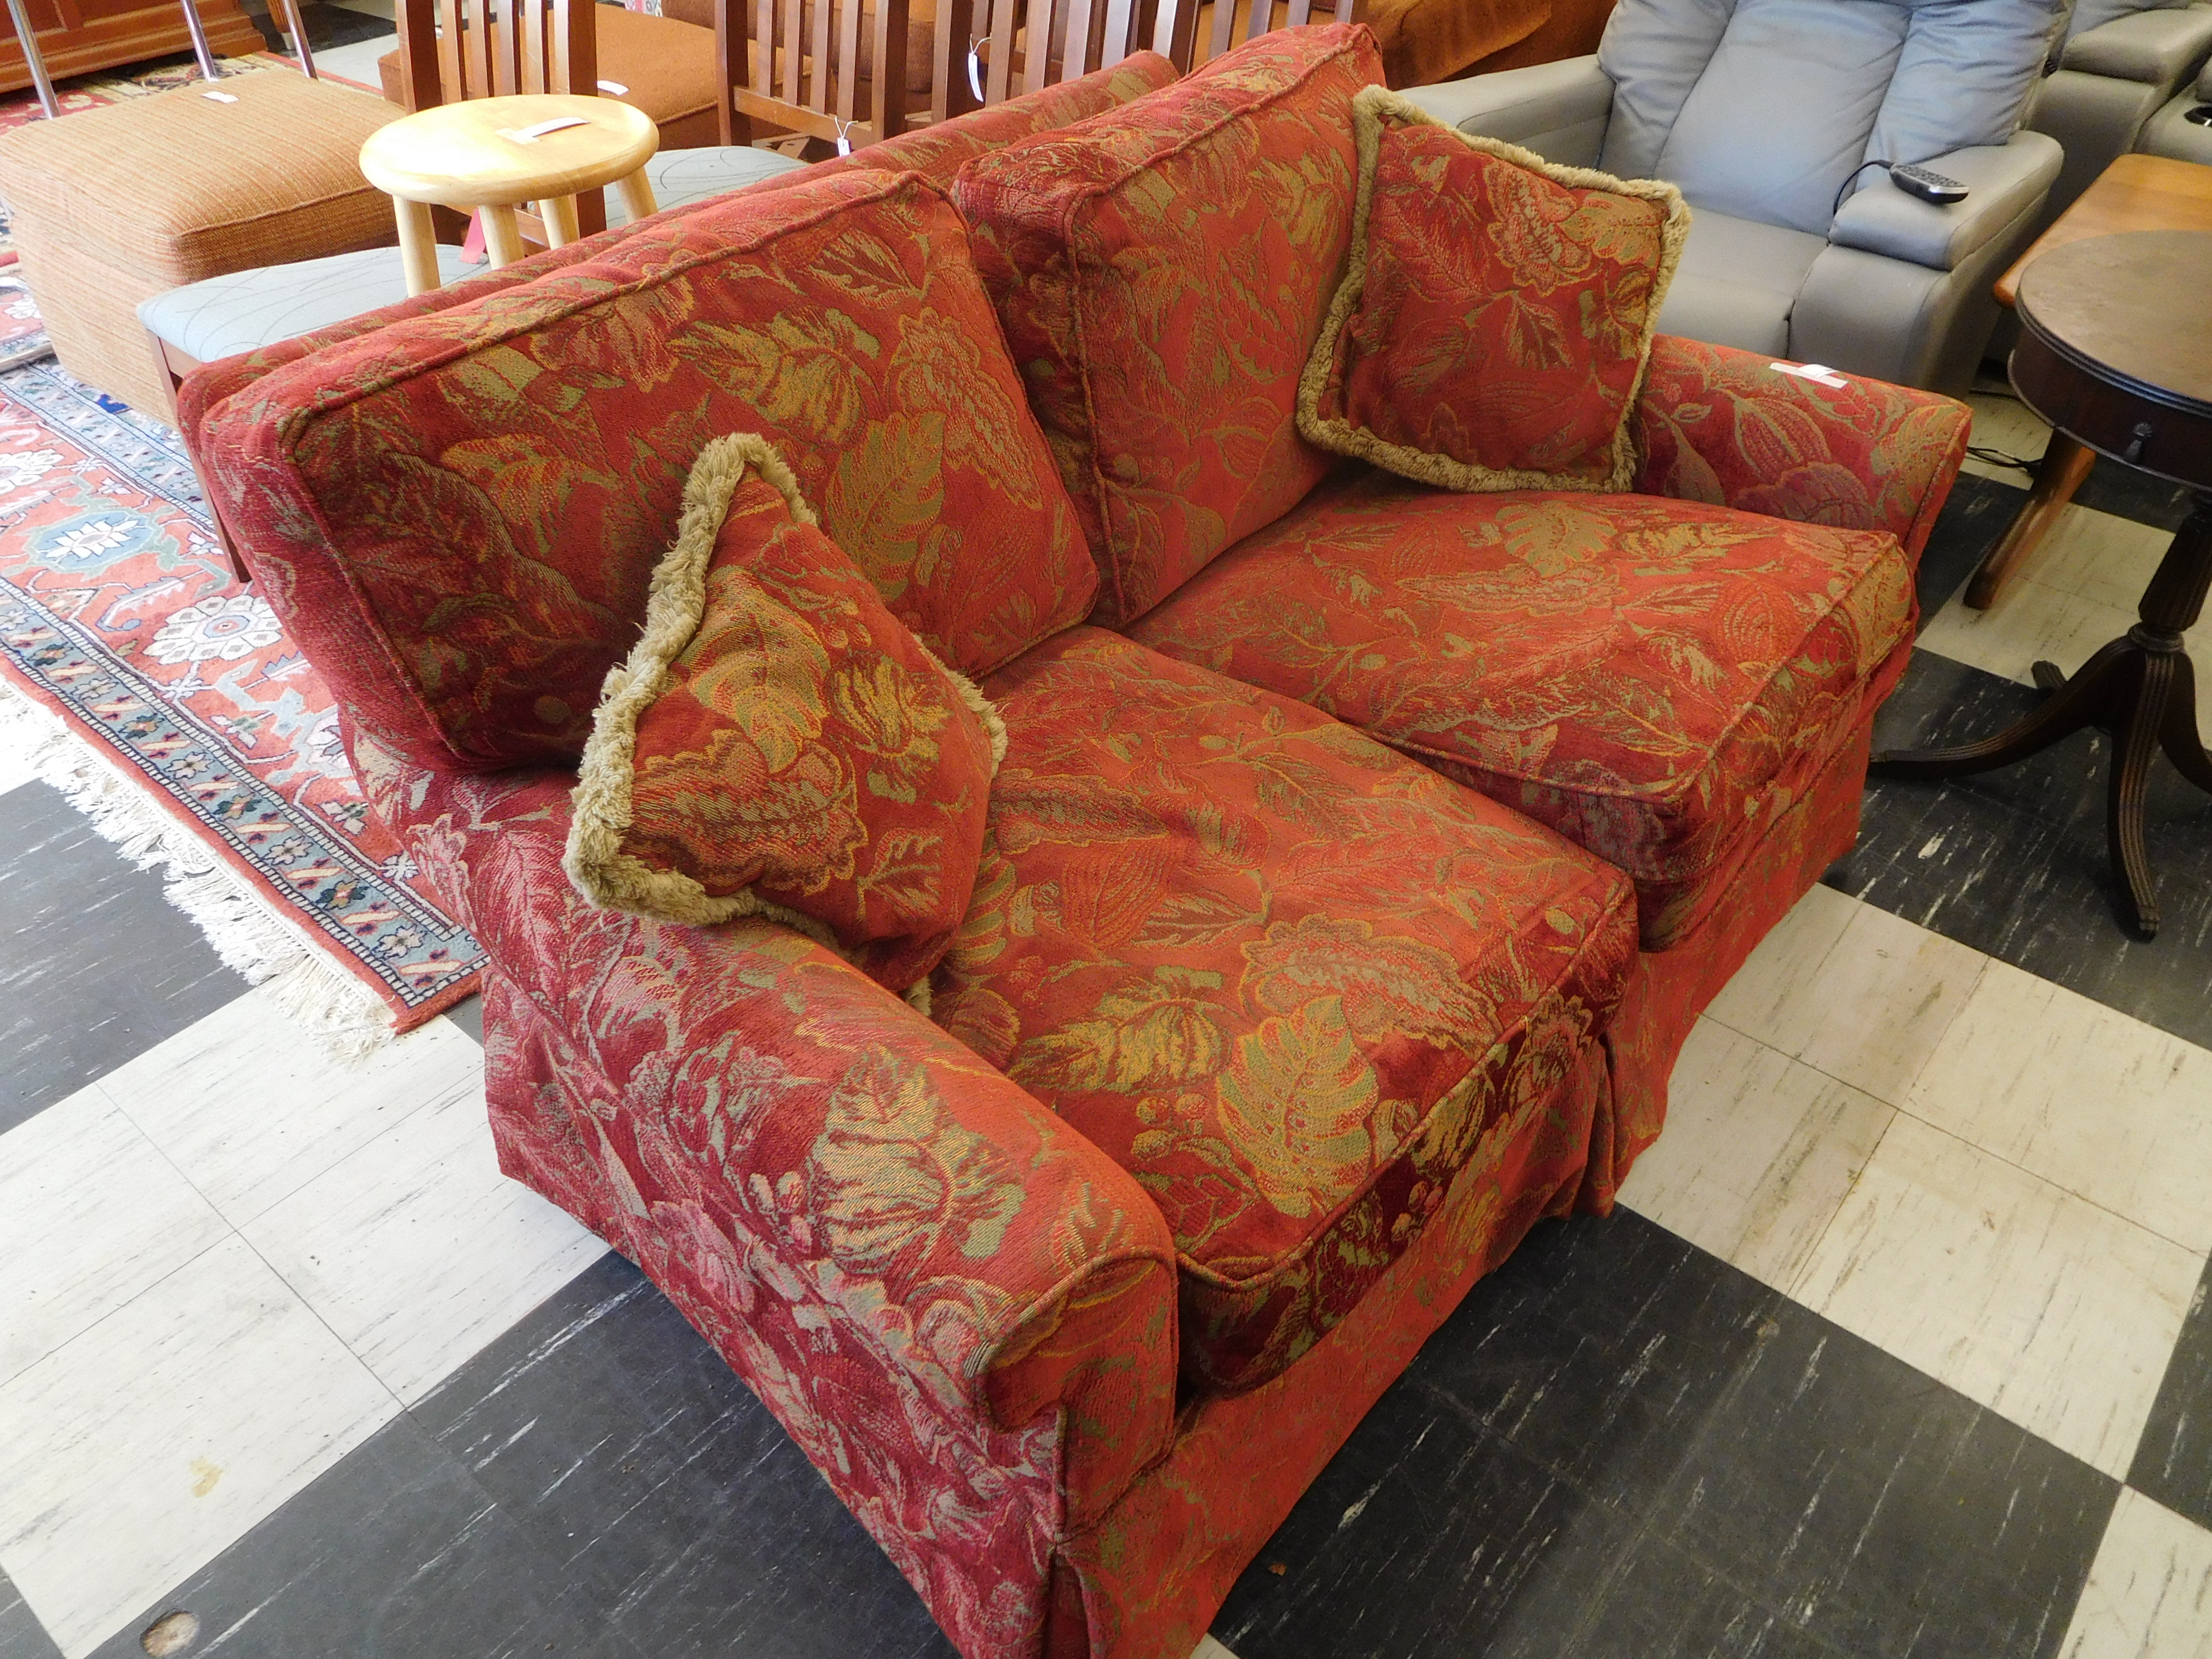 Reddish Love Seat with Leaf Patterned Upholstery and Matching Pillows